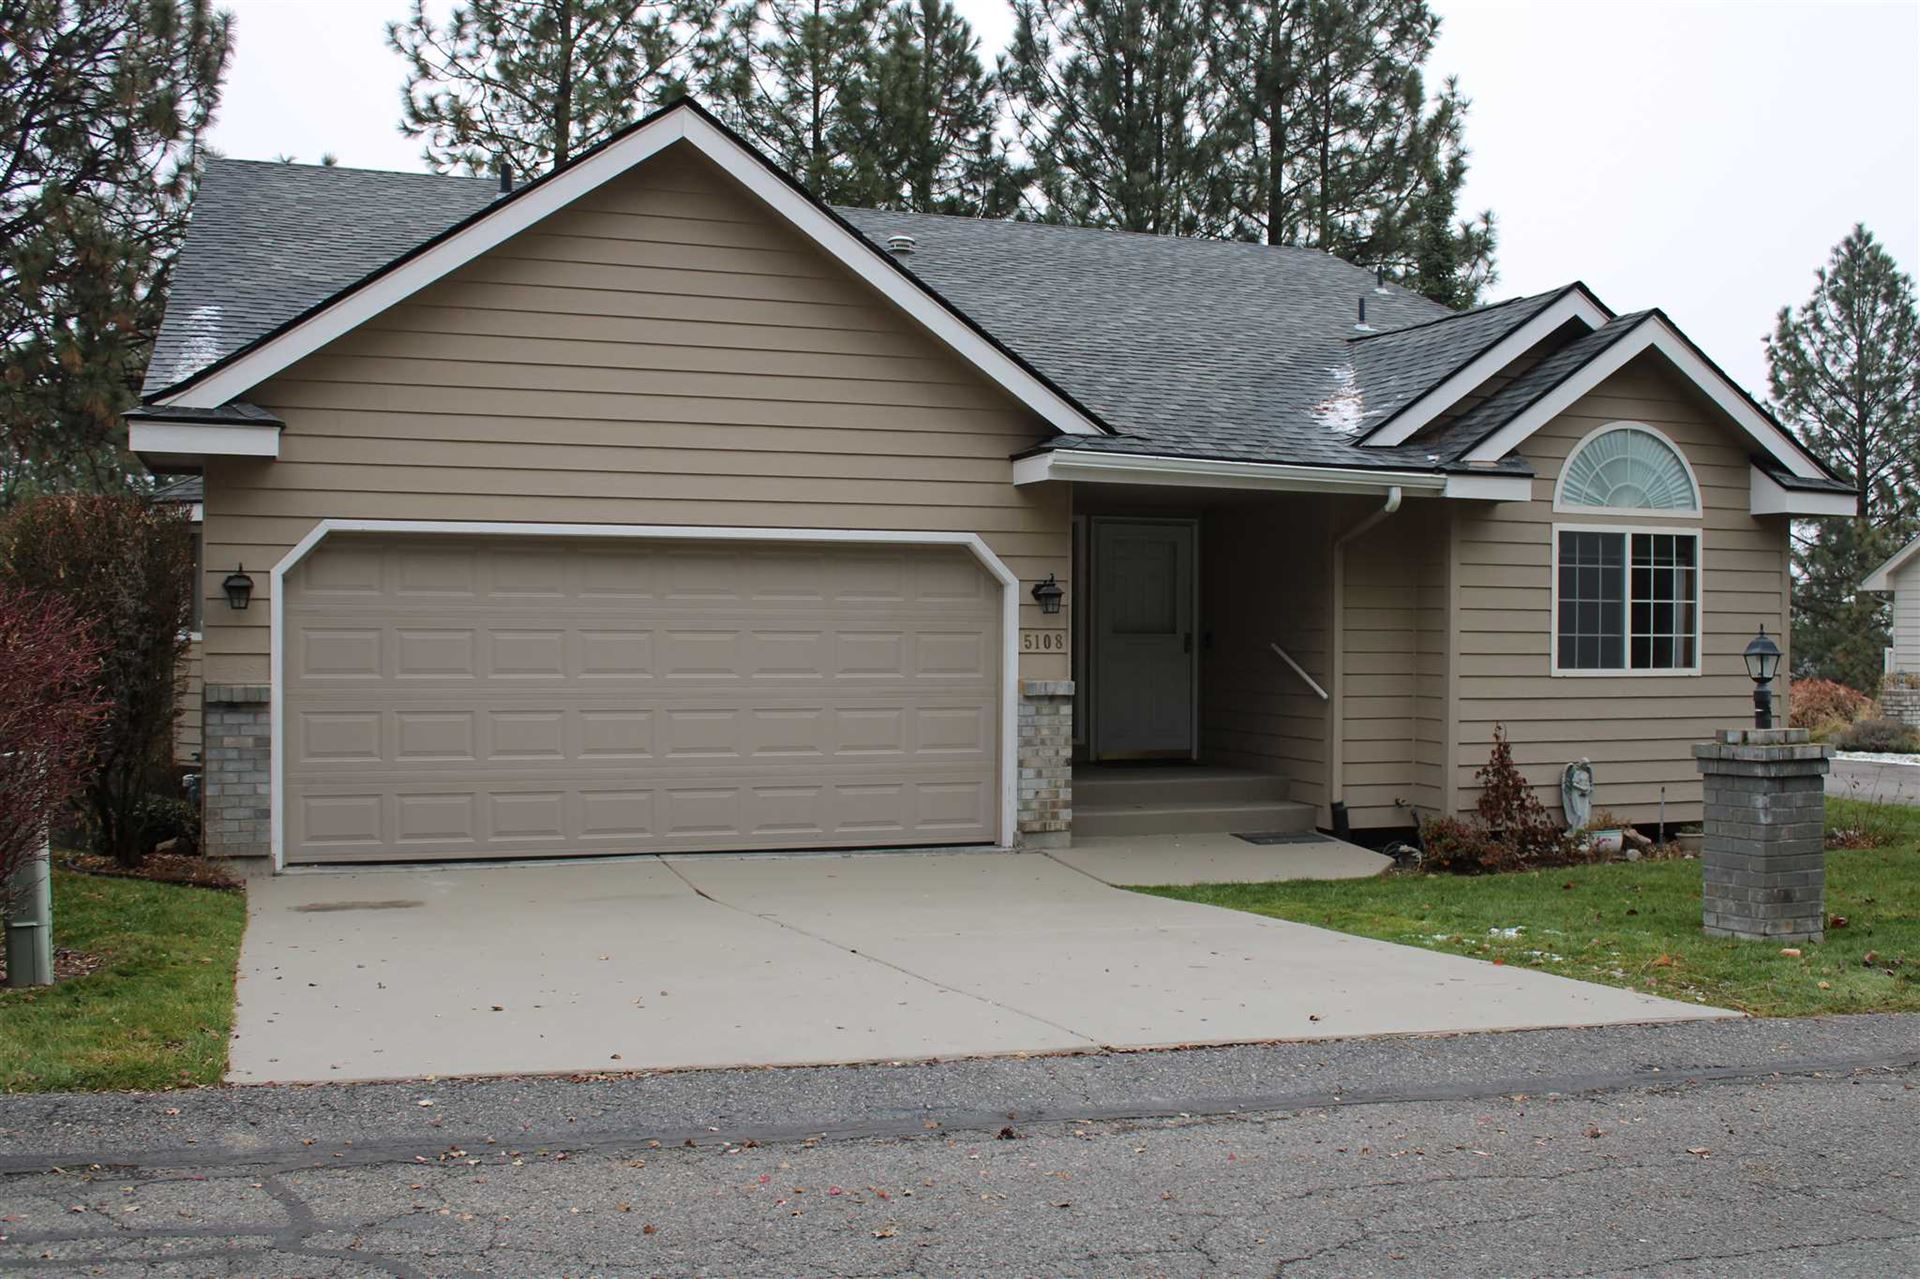 5108 N N. Hutton View St #5108, Spokane, WA 99212 - #: 202025559